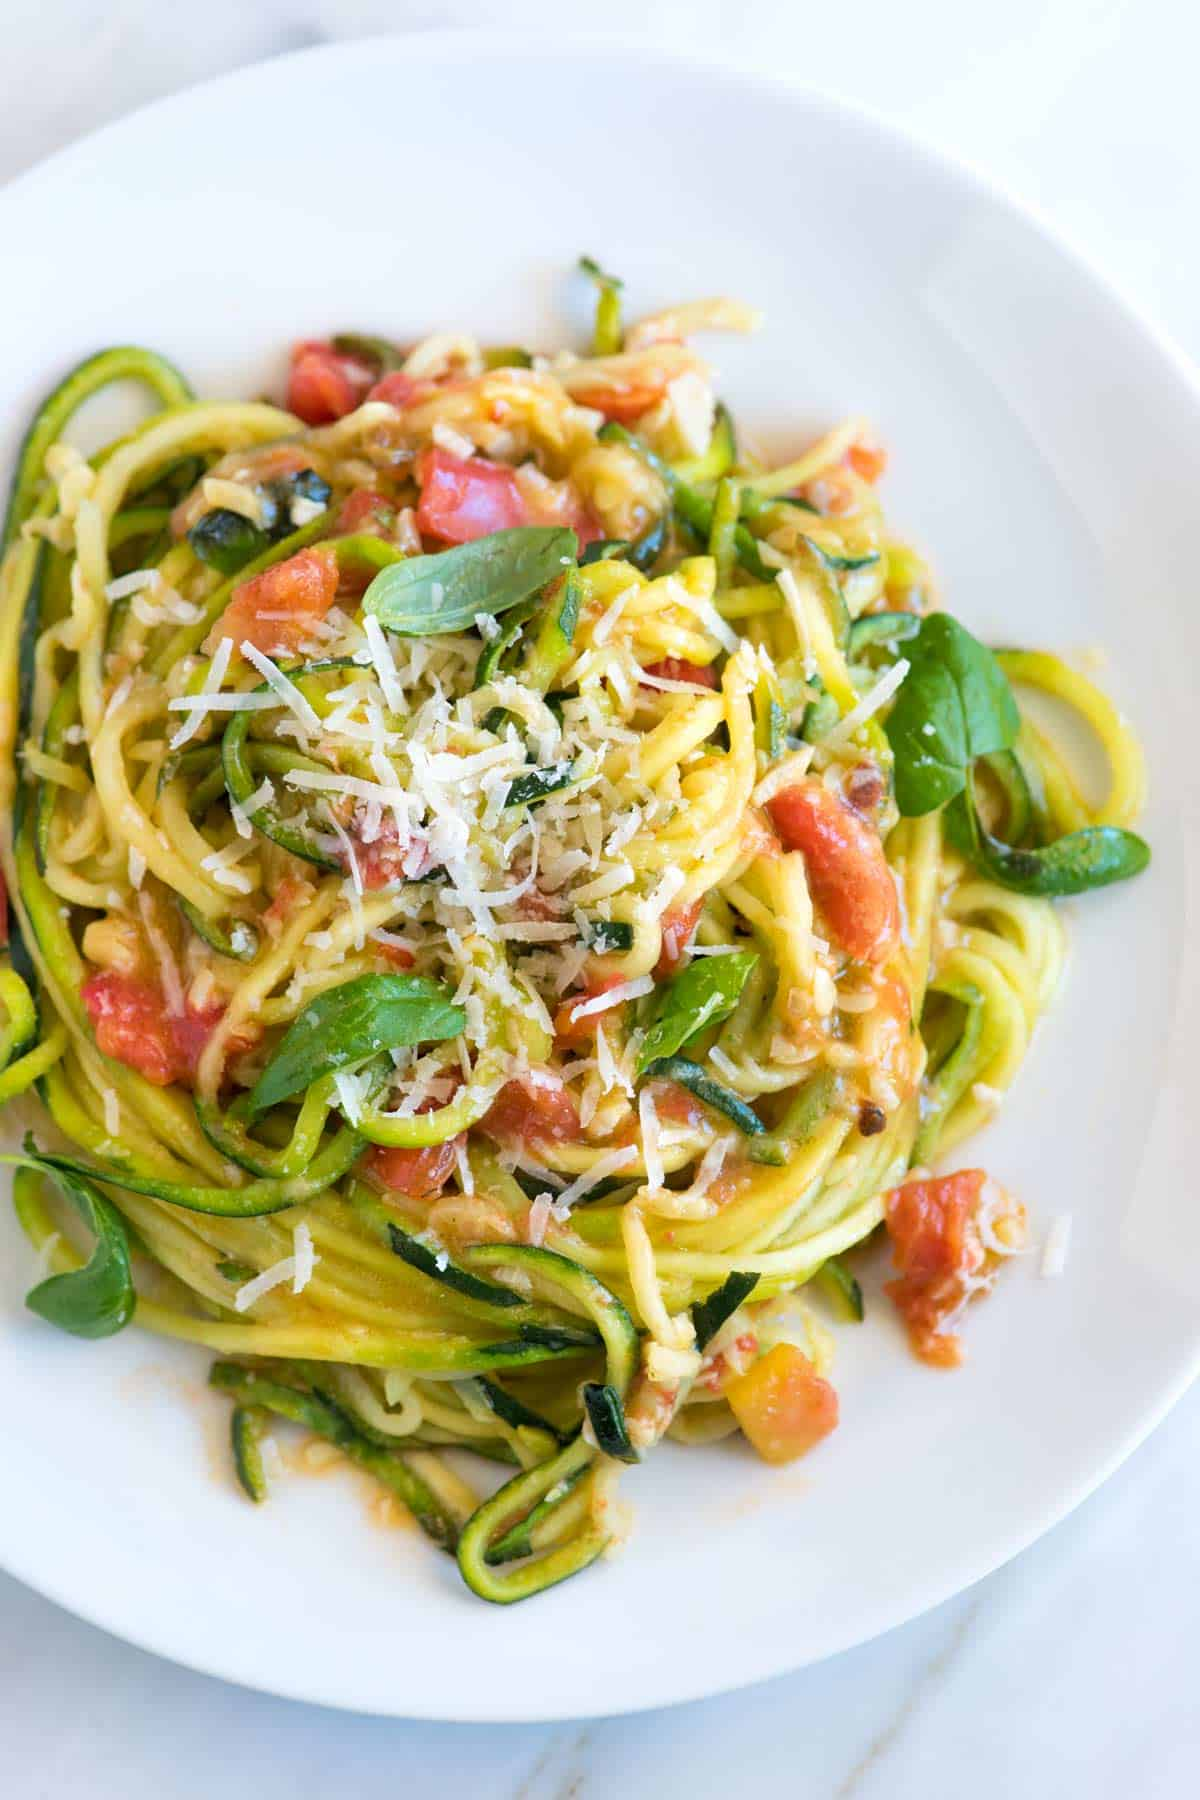 How to Make Guilt-Free, 20 Minute Garlic Parmesan Zucchini Pasta // My favorite way to cook zucchini noodles! See how to make our 20-minute zucchini noodles pasta recipe with garlic, tomatoes, basil, and parmesan cheese. Low-carb, keto-adaptable, and vegetarian!